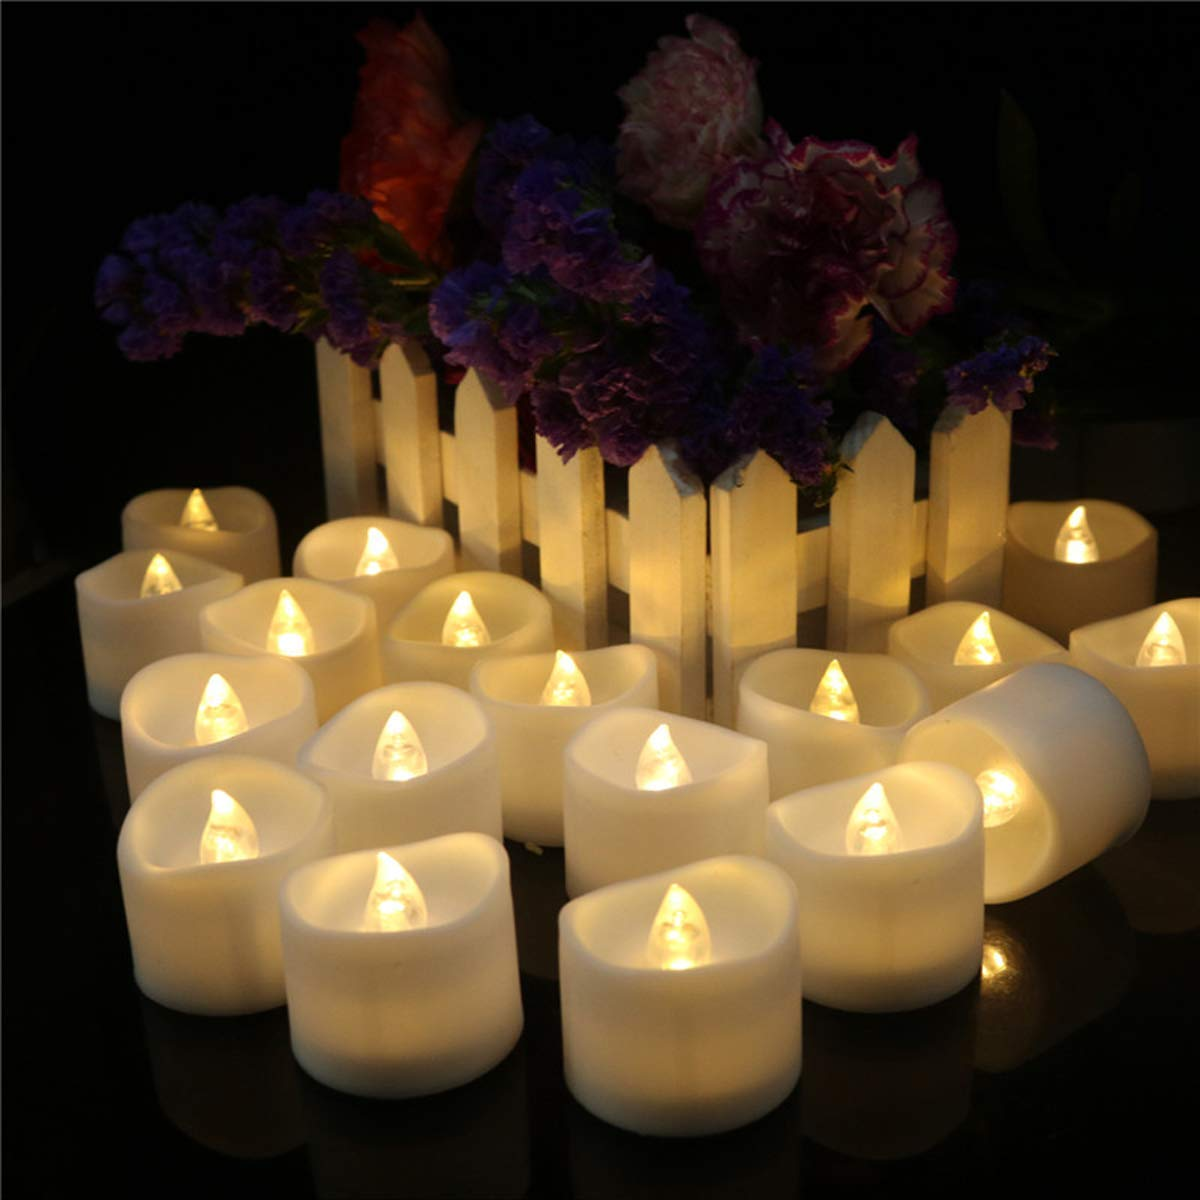 Dellukee Flameless Candles Flicker with Timer Wave Open Realistic Bright Battery Operated LED Tealights Candles for Wedding Birthday Party Decoration, Pack of 24, Electric Fake Candle in Warm White